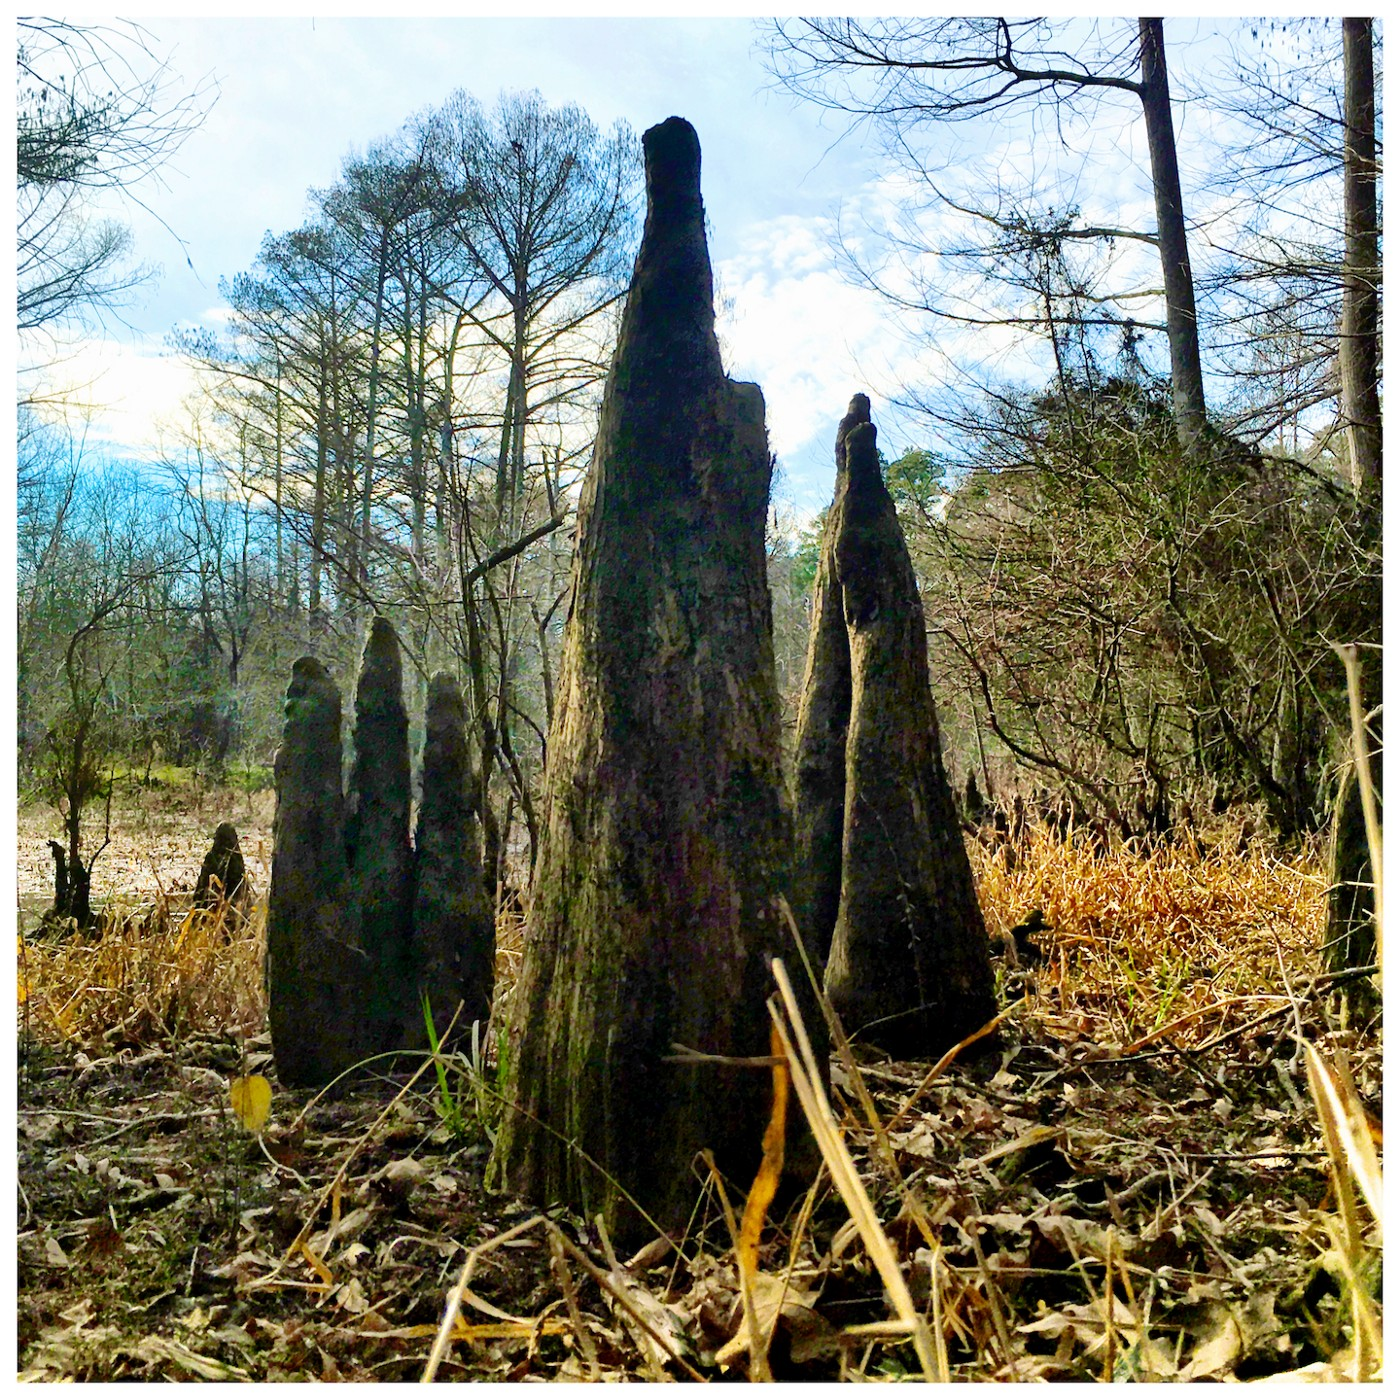 Cypress knees emerge from a swamp.